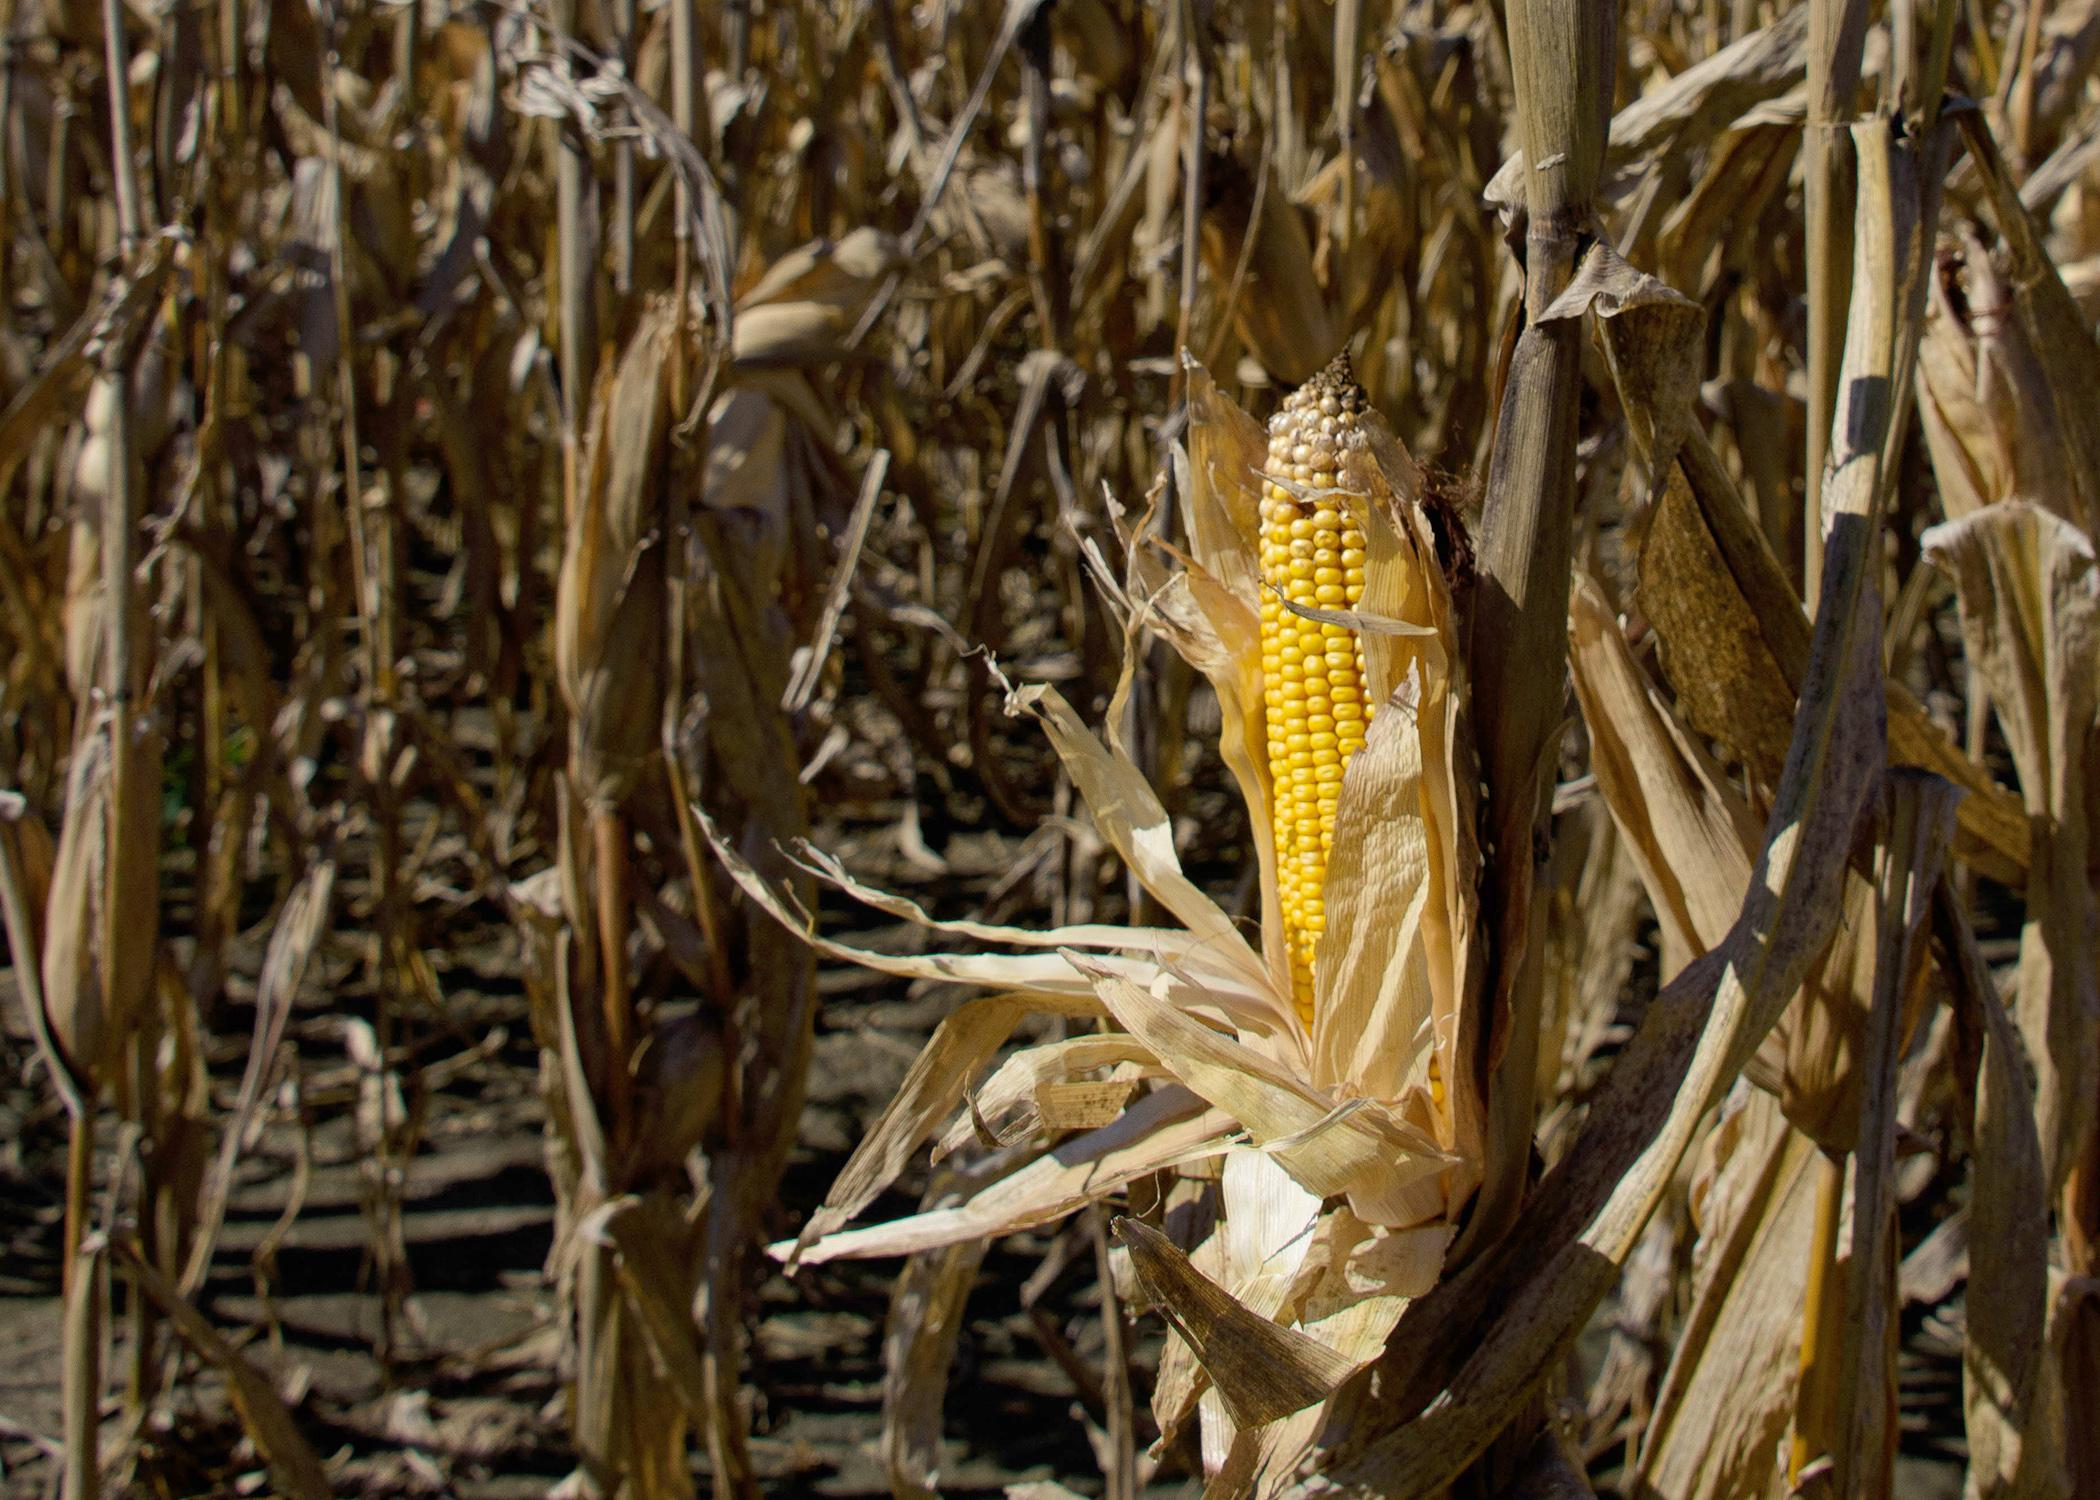 An ear of corn in front of a backdrop of stalks.